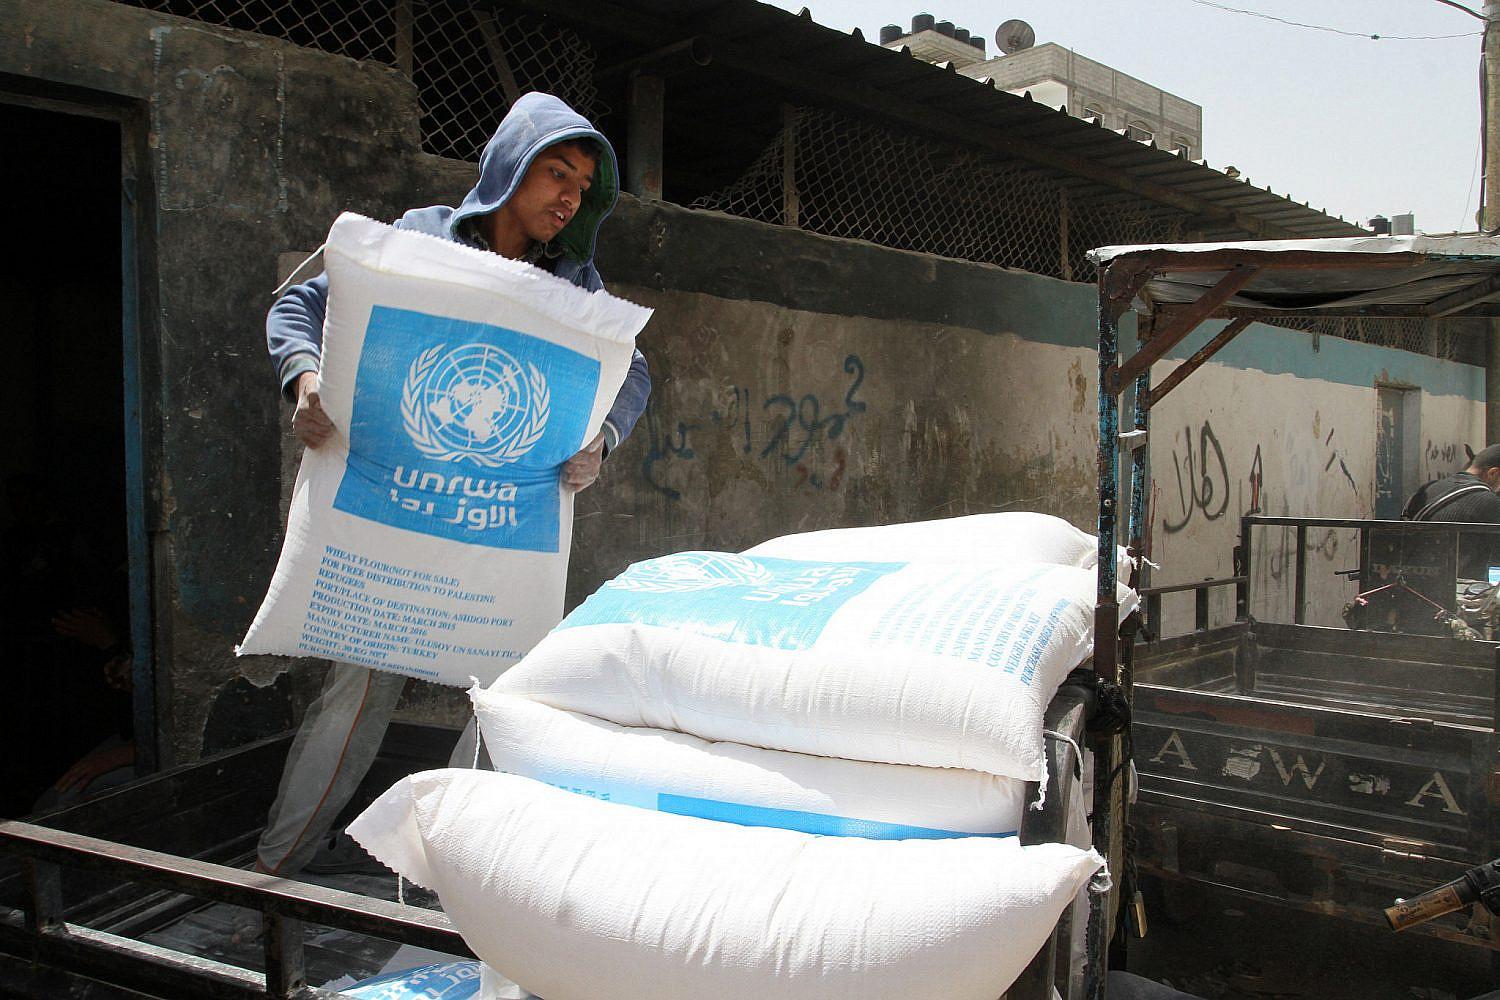 Palestinians receive their monthly food aid at a United Nations distribution center (UNRWA) in the Rafah refugee camp, in southern Gaza Strip, April 28, 2015. (Abed Rahim Khatib/Flash90)